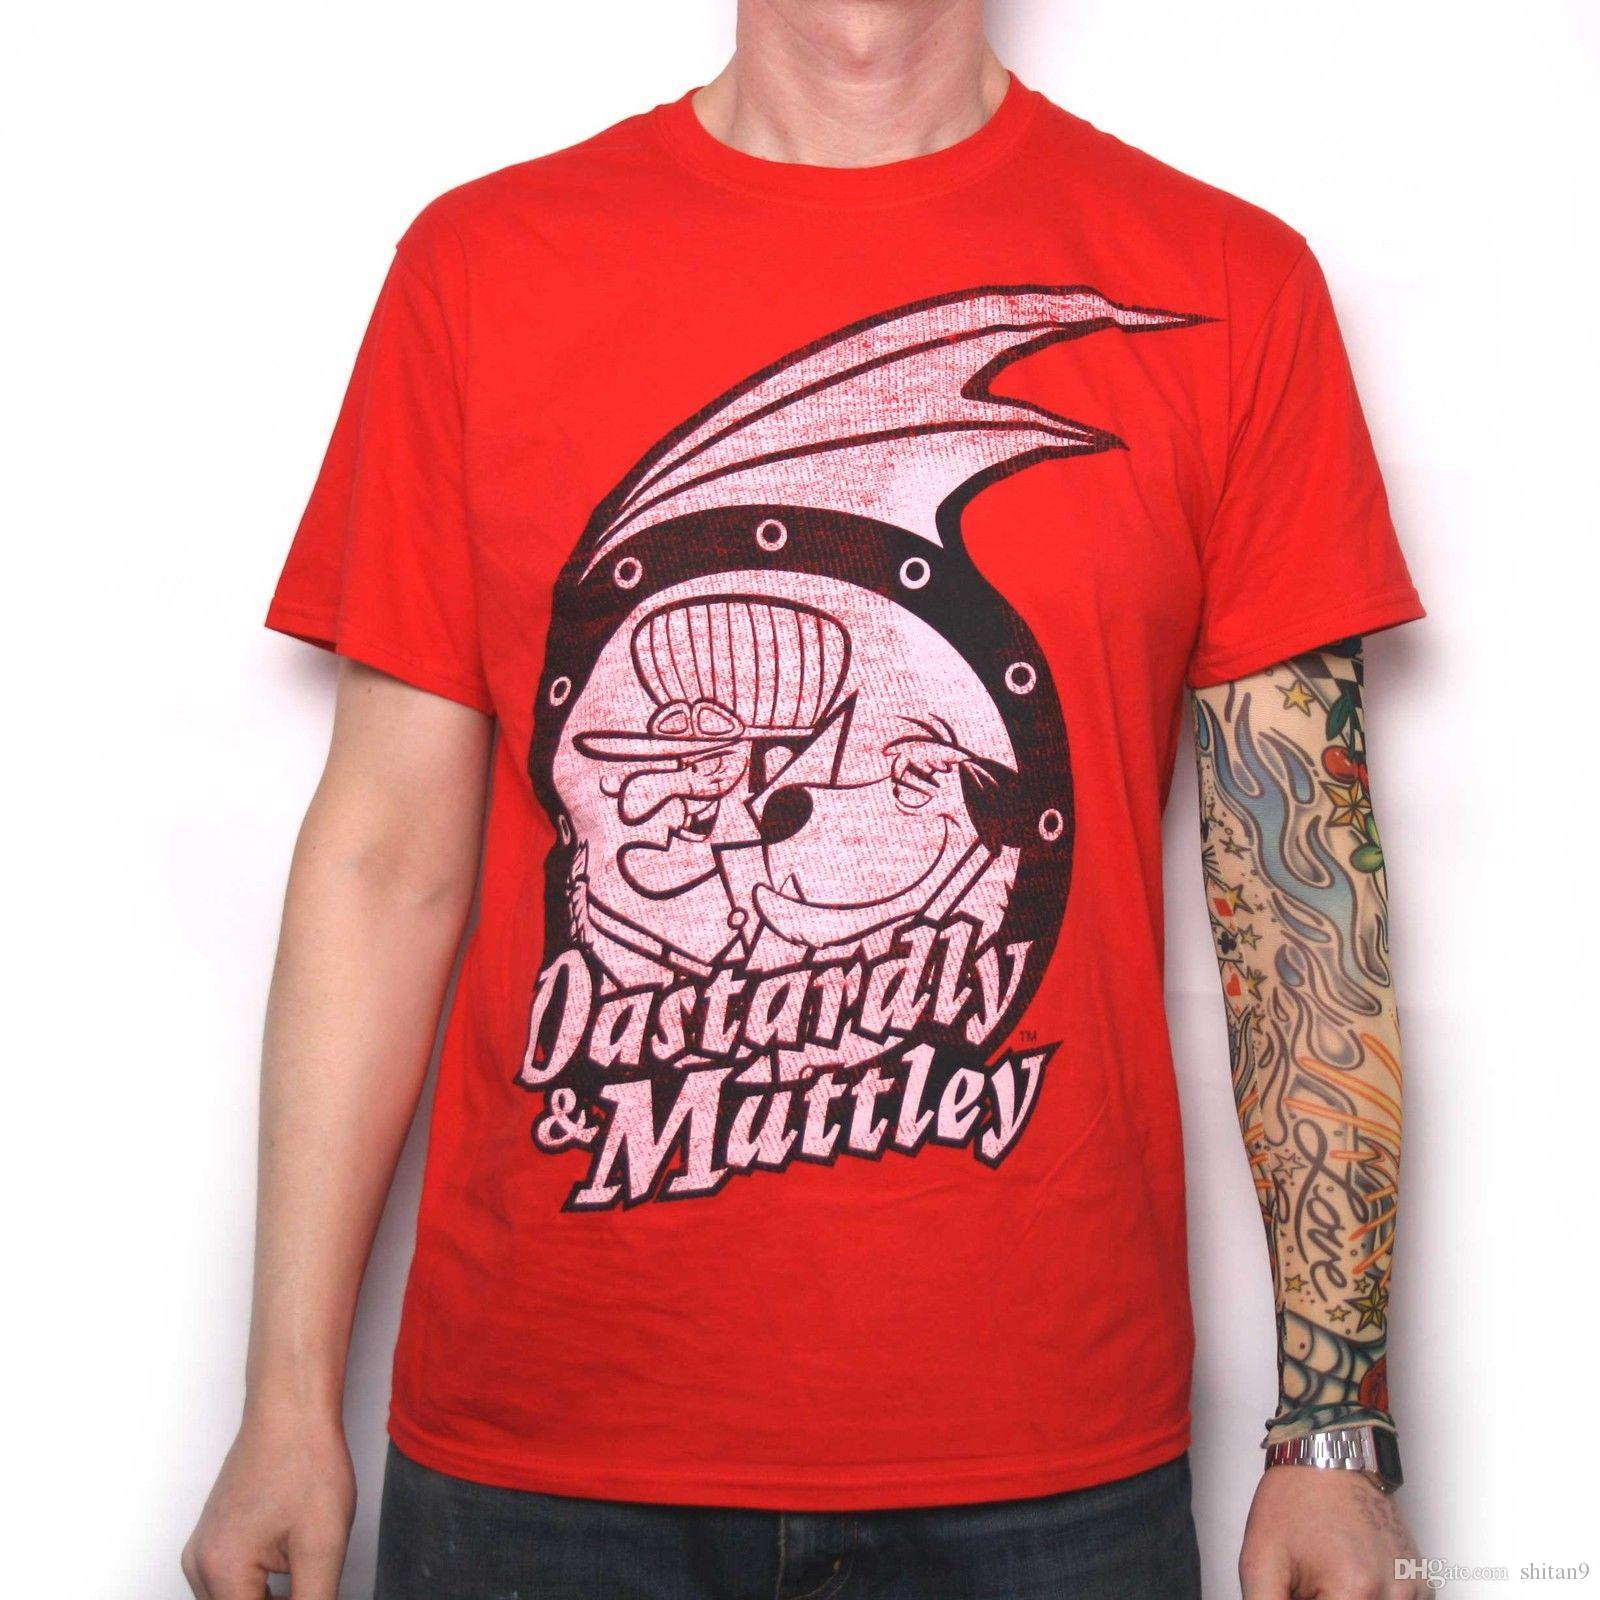 b9d70daca6 HANNA BARBERA DASTARDLEY & MUTLEY T SHIRT 100% OFFICIAL WACKY RACES Funny  Printed T Shirts Cool Tee From Shitan9, $11.78| DHgate.Com